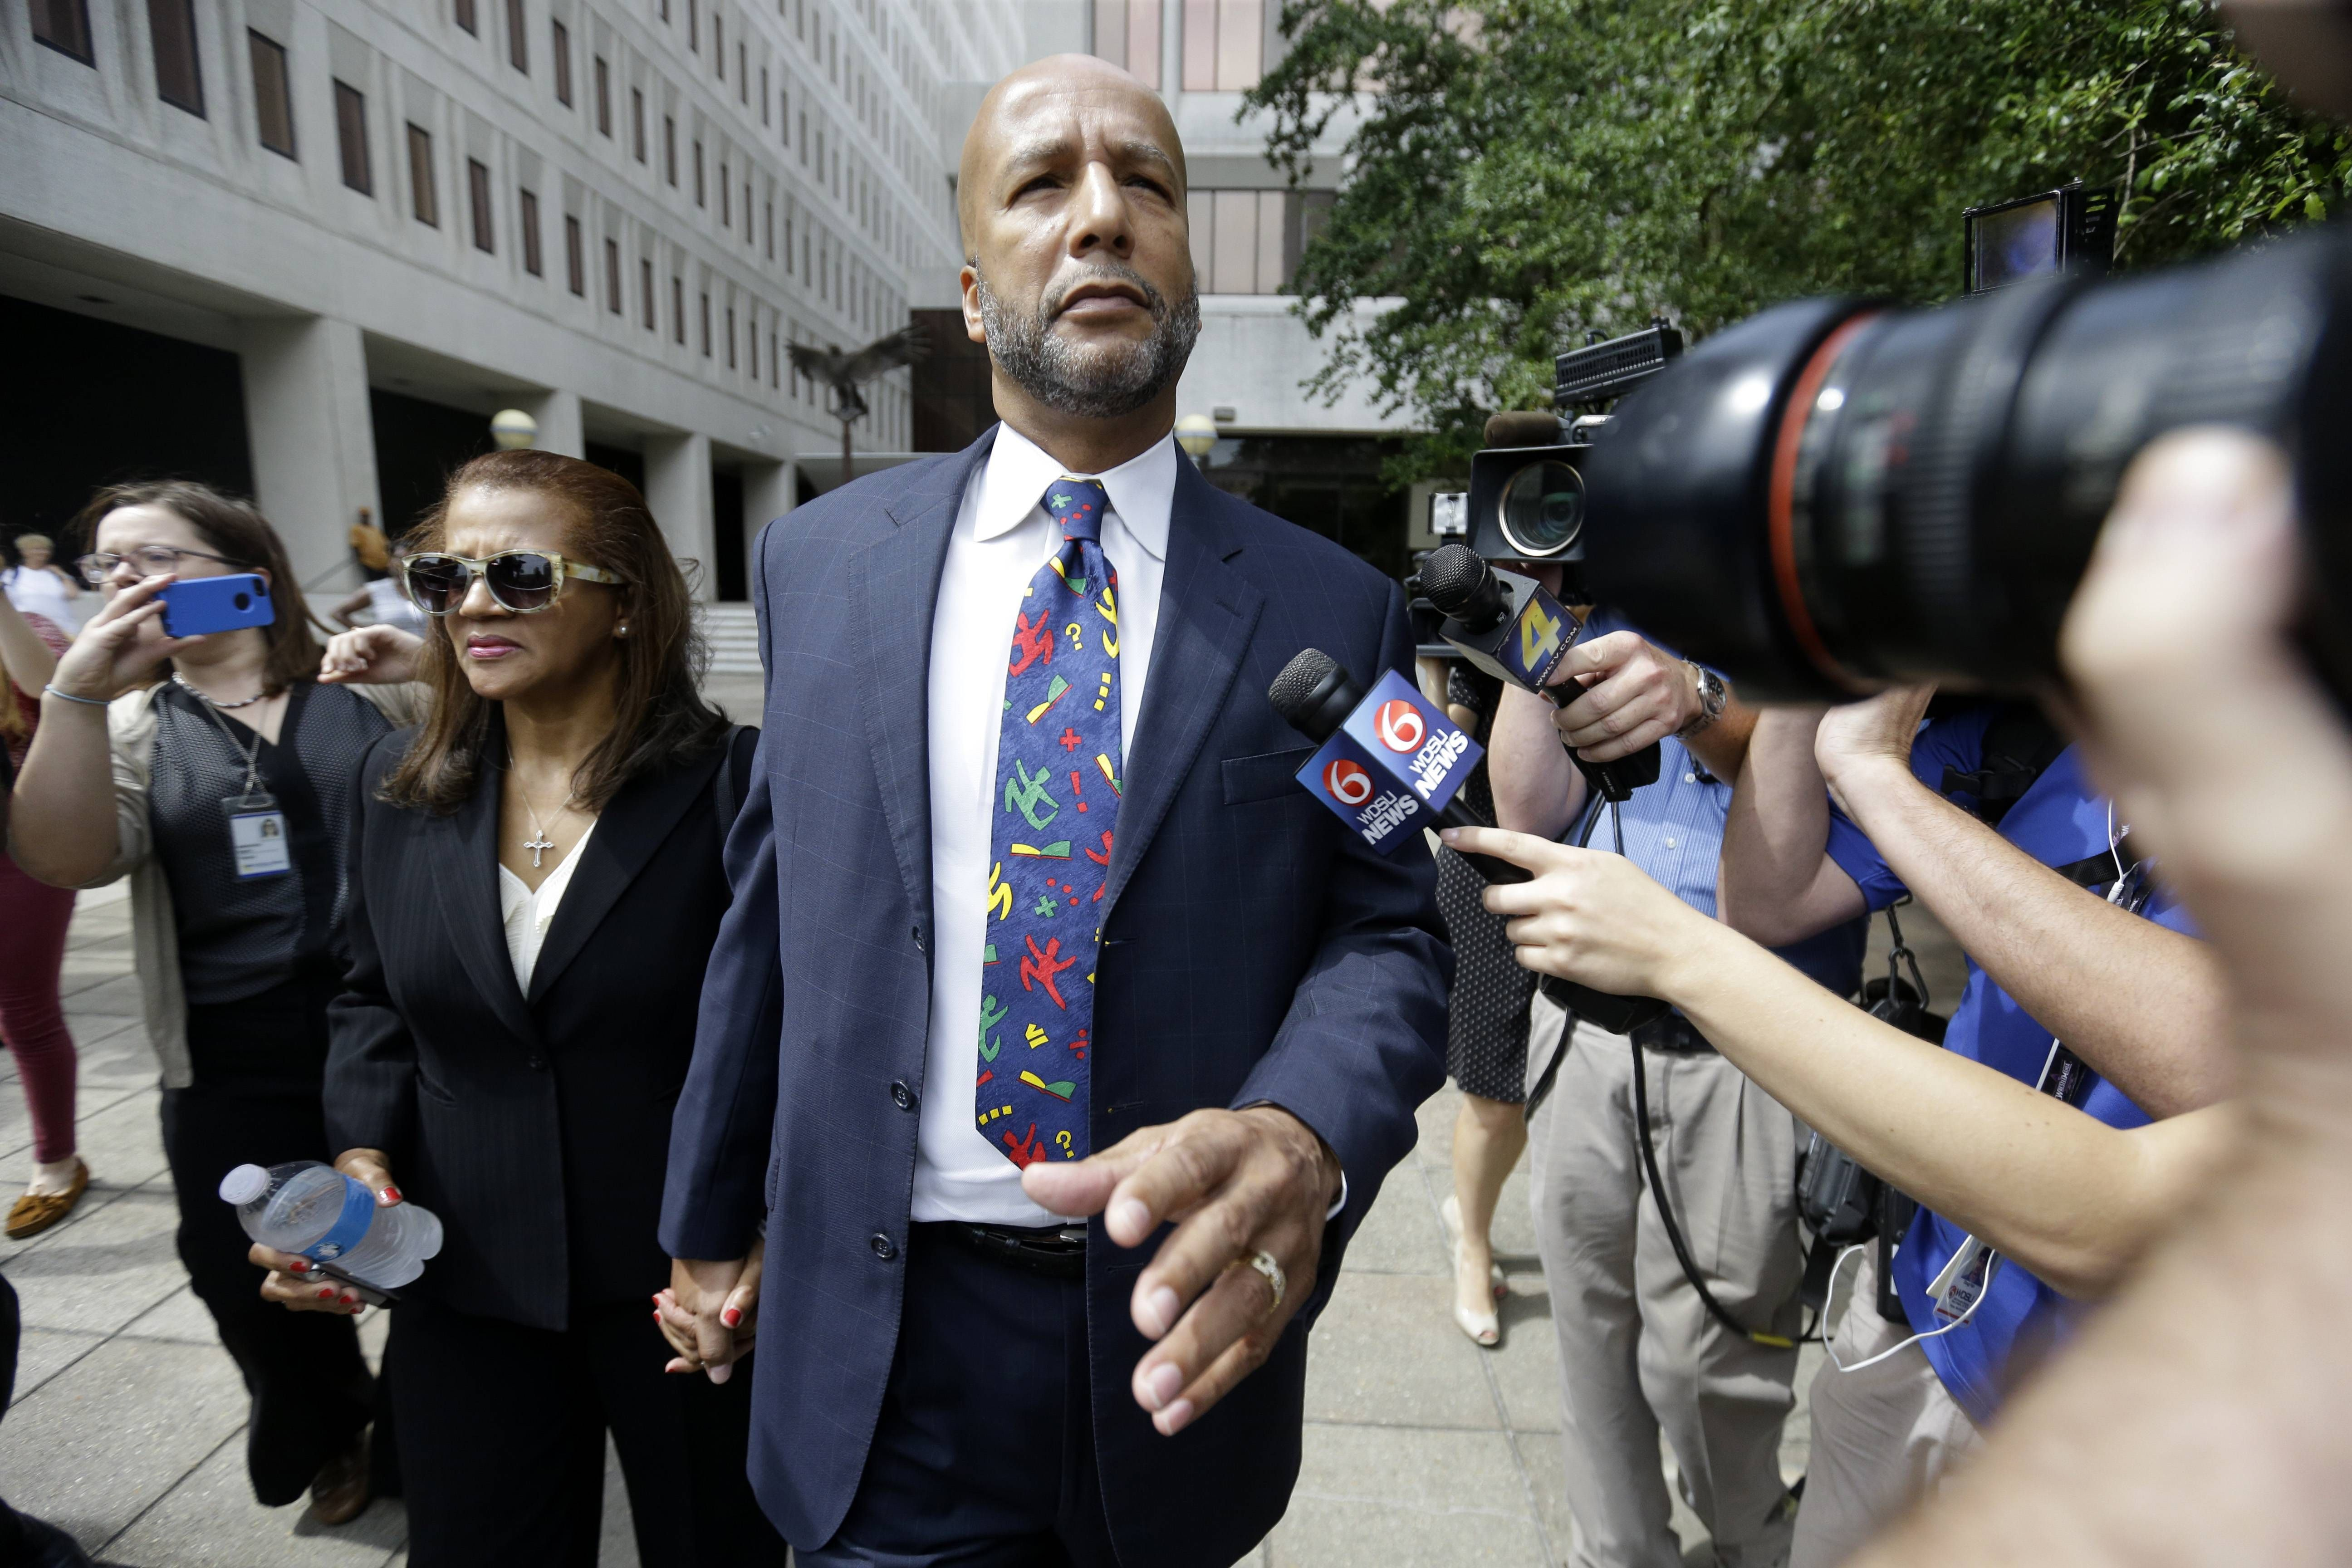 Former New Orleans Mayor Ray Nagin was sentenced Wednesday to 10 years in prison for bribery, money laundering and other corruption that spanned his two terms as mayor — including the chaotic years after Hurricane Katrina hit in 2005.